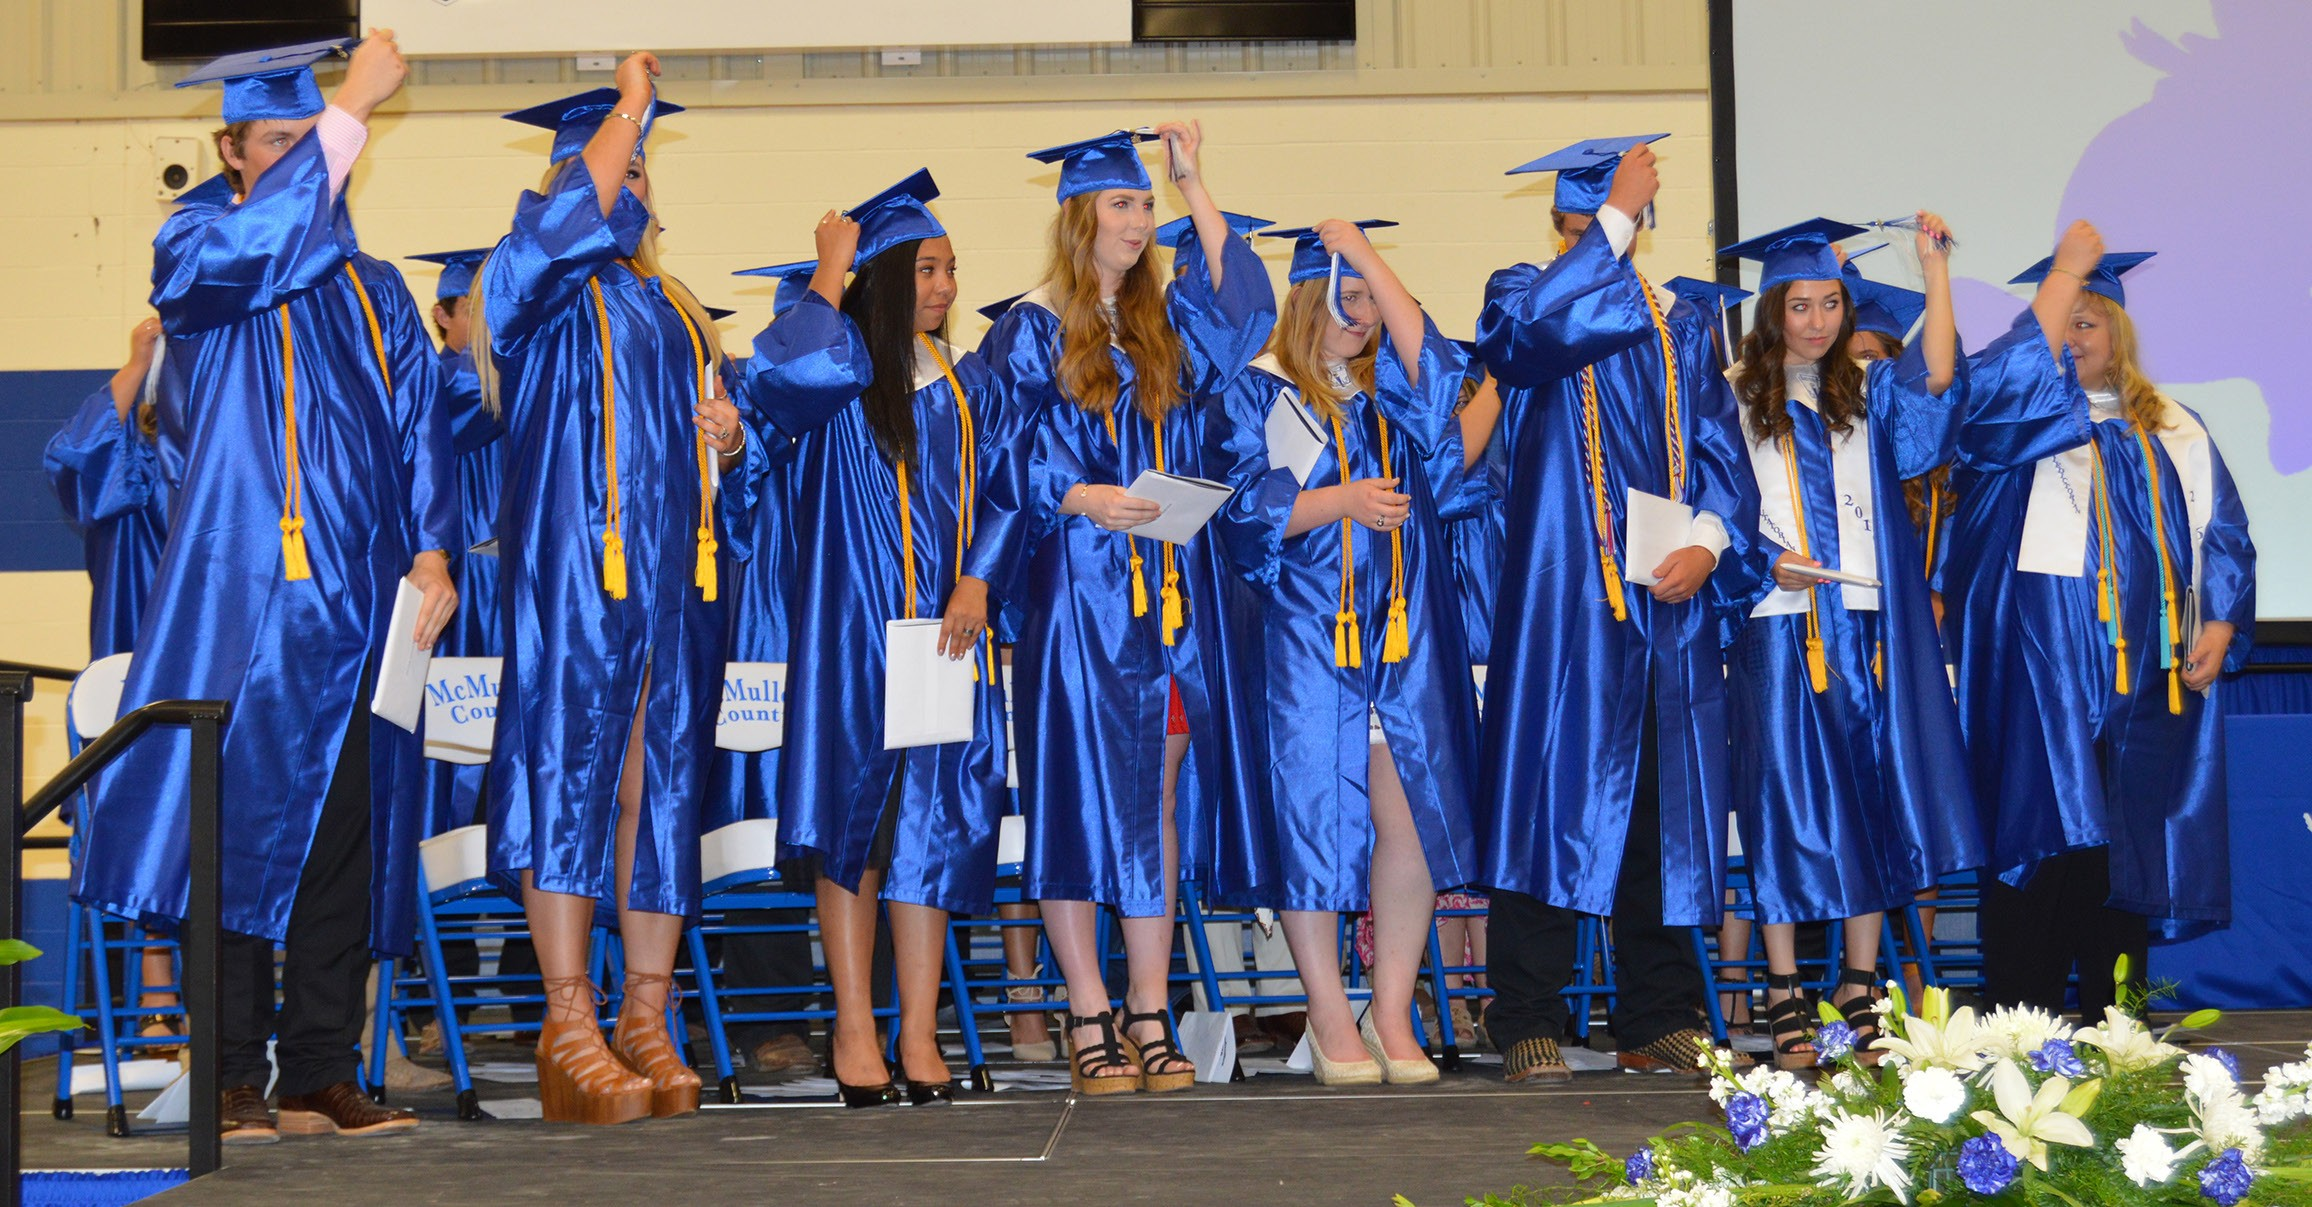 The McMullen County HIgh School Senior Class turn their tassels after Superintendent Dave Underwood certified they were all 2016 graduates during the commencement ceremony held Saturday, May 28 in the new Cowboy Gymnasium. The 24 graduates also received over $645,000 in scholarship funds.